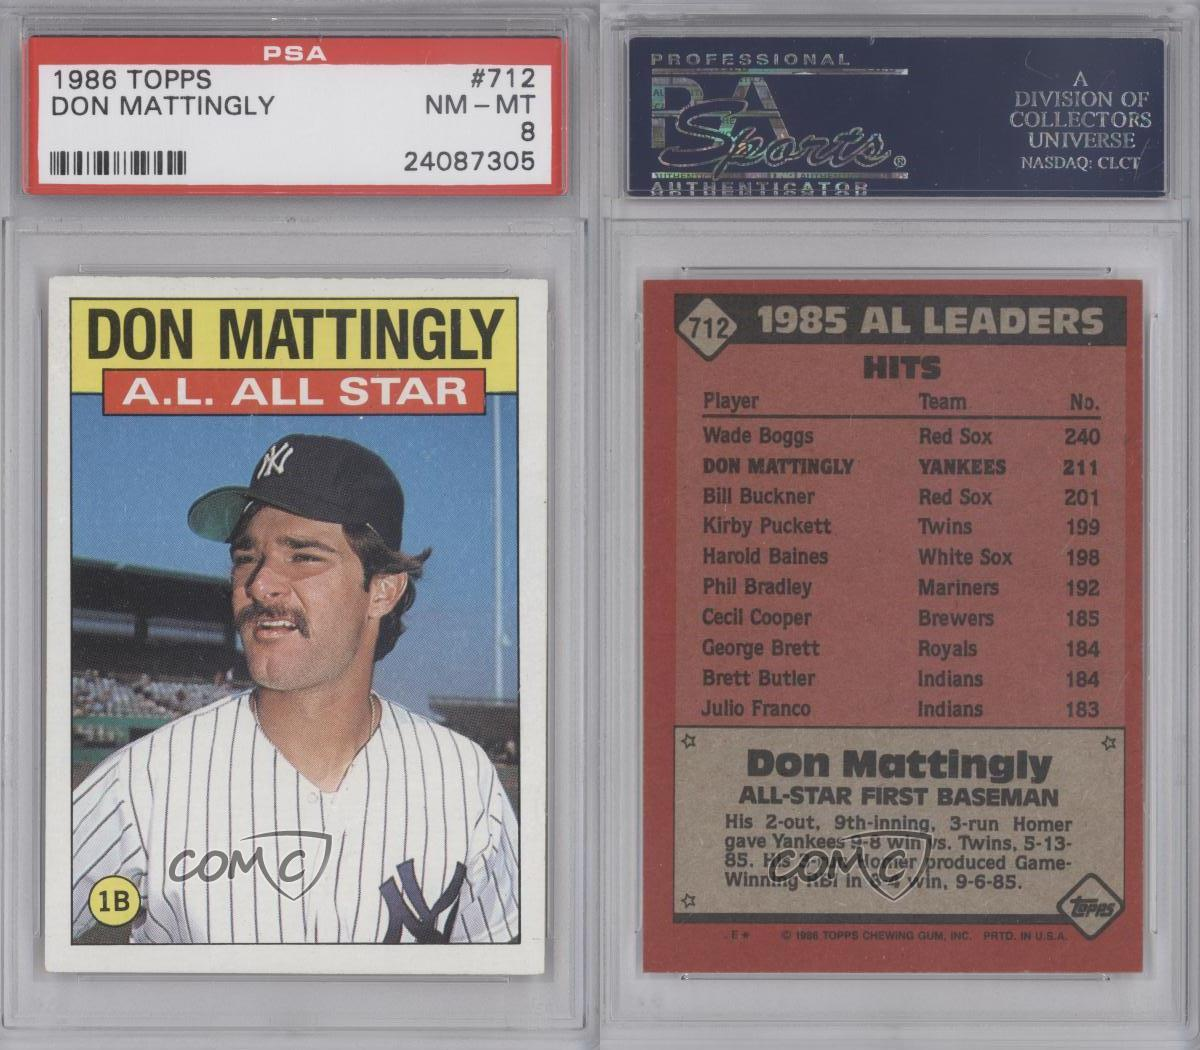 1986 Topps 712 Don Mattingly Psa 8 New York Yankees